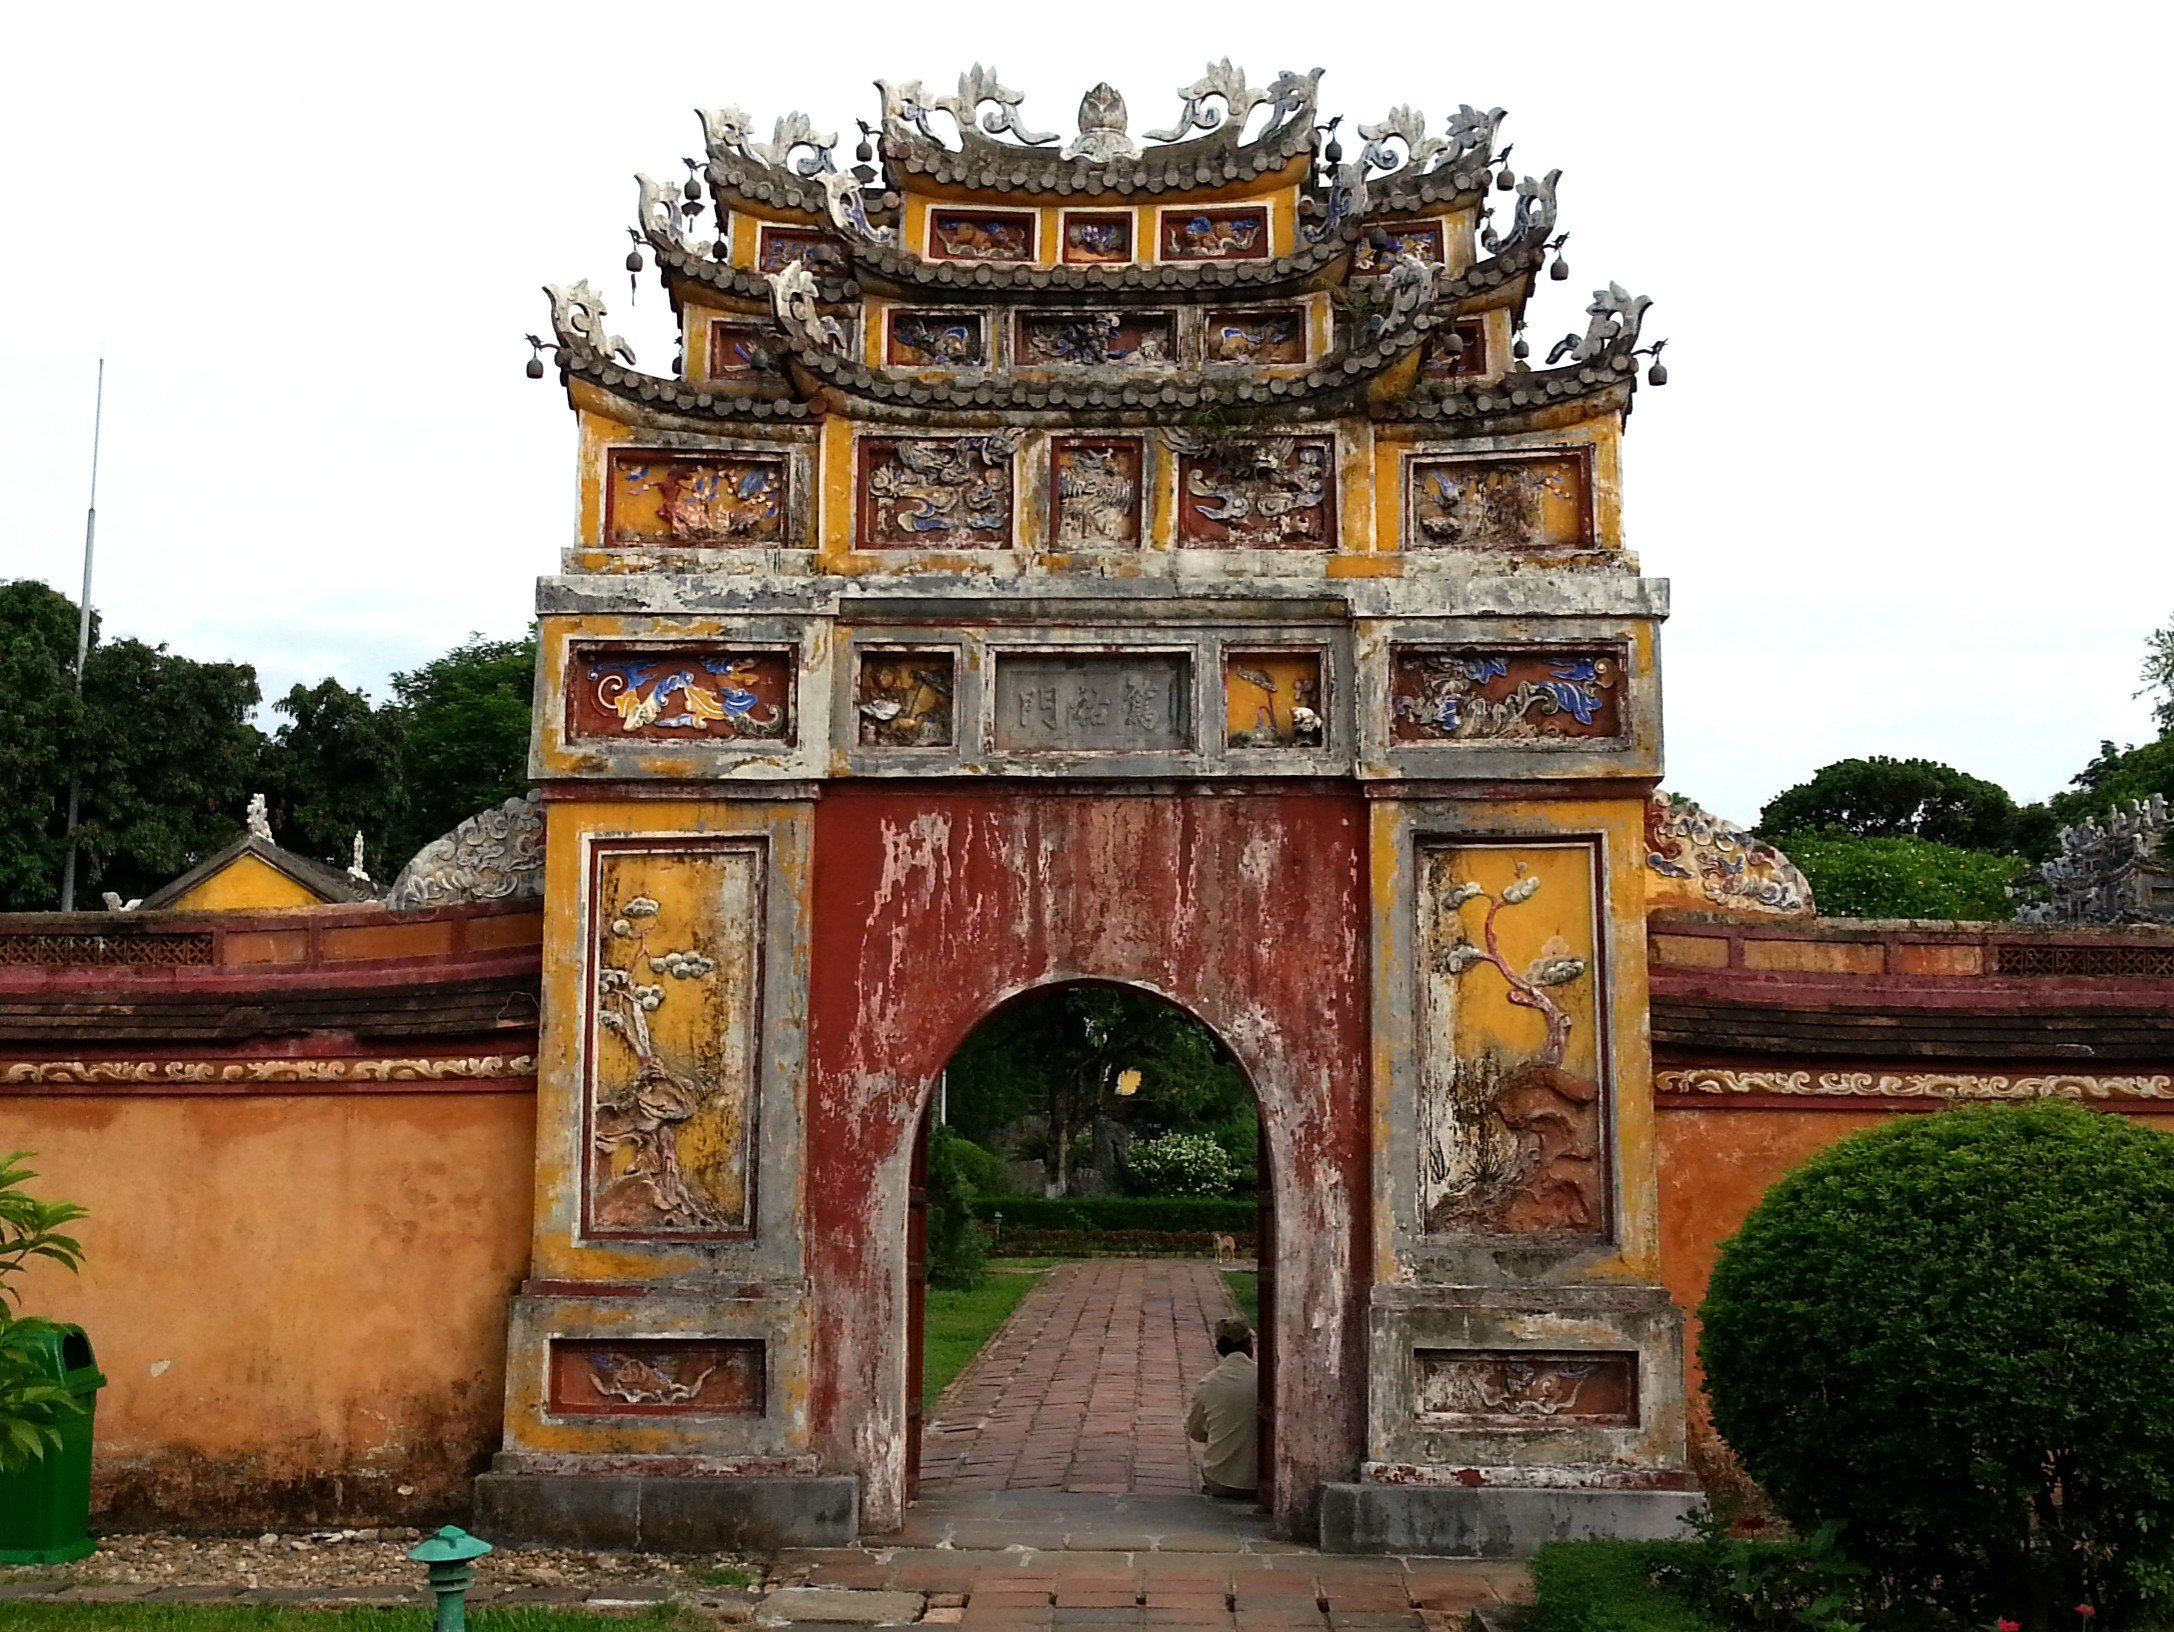 Gate to the Inner Garden of the Imperial Citadel in Hue